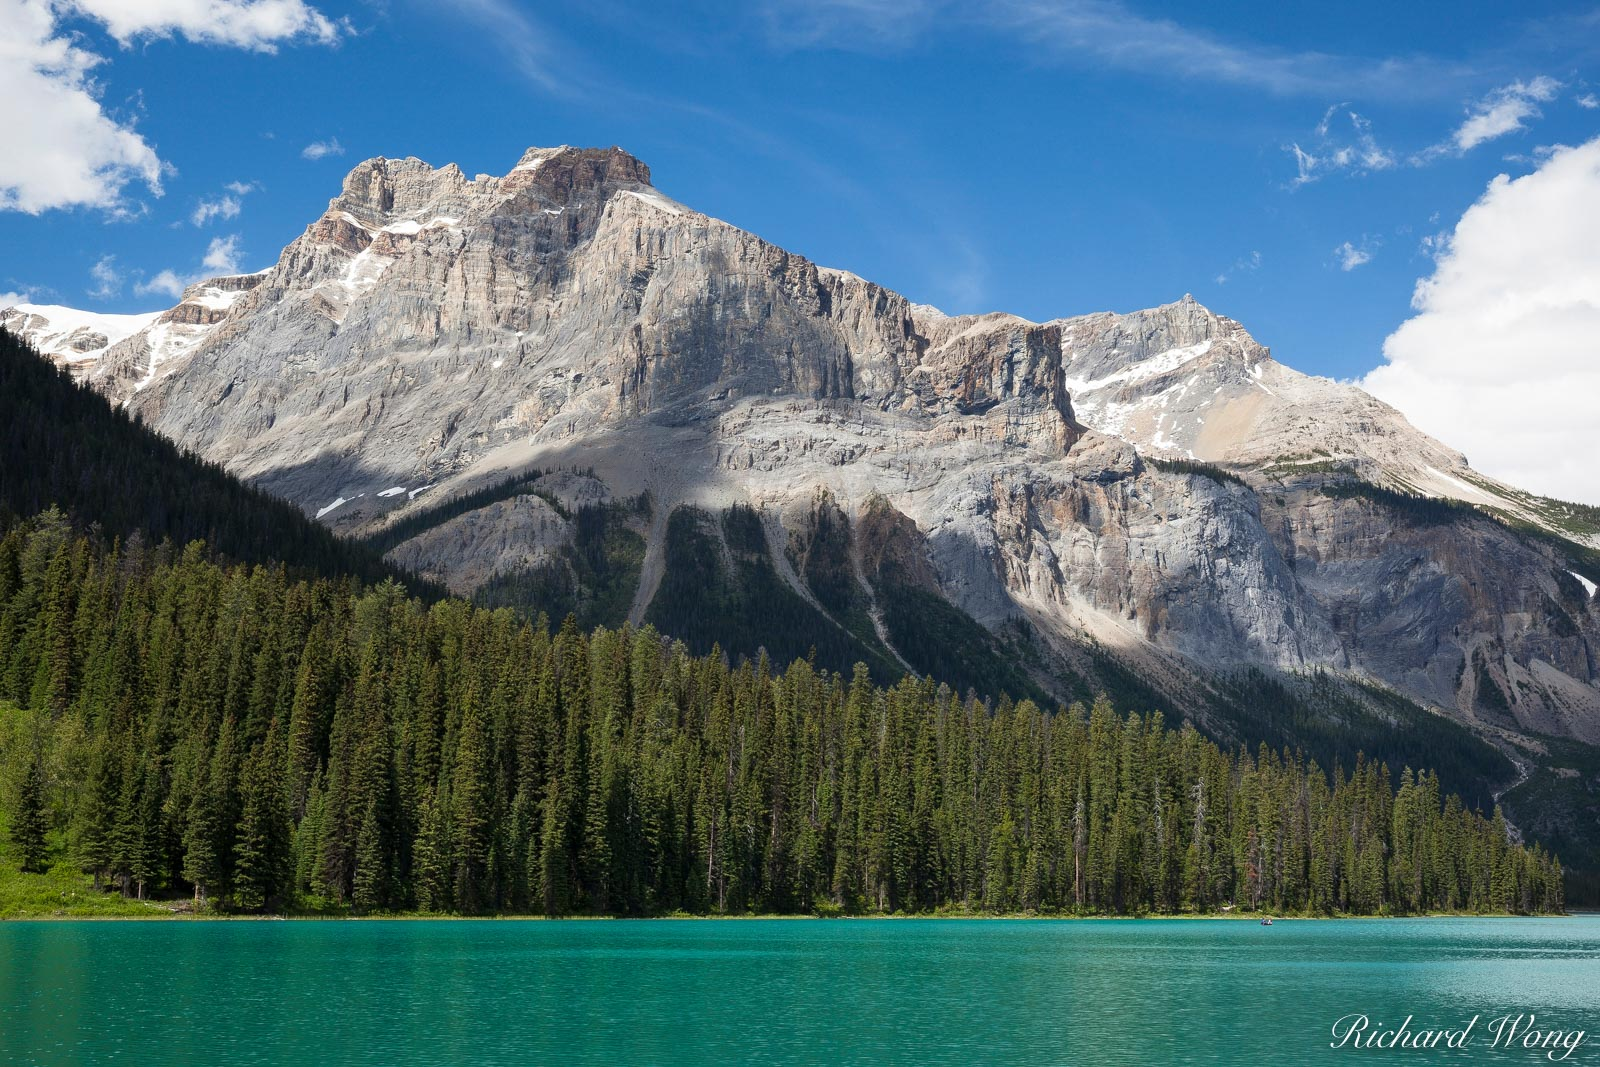 b.c, british columbia, canada, canadian rockies, color image, emerald lake, horizontal format, landscape photography, natural light, nature, north america, outdoor, outdoor shot, outdoors, outside, pe, photo